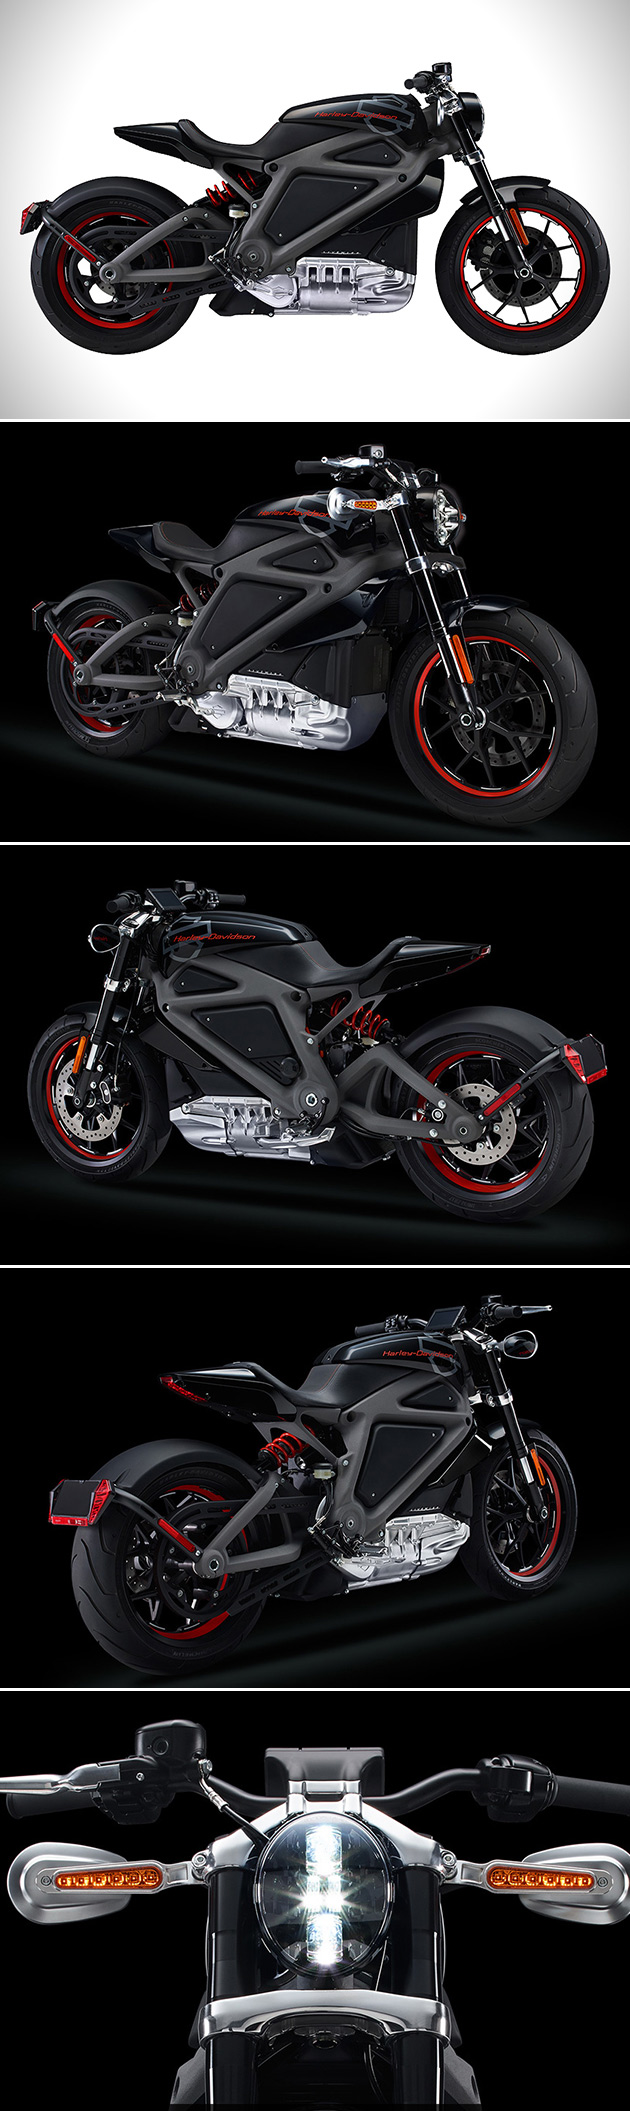 Harley Davidson Livewire Electric Motorcycle Is Company S